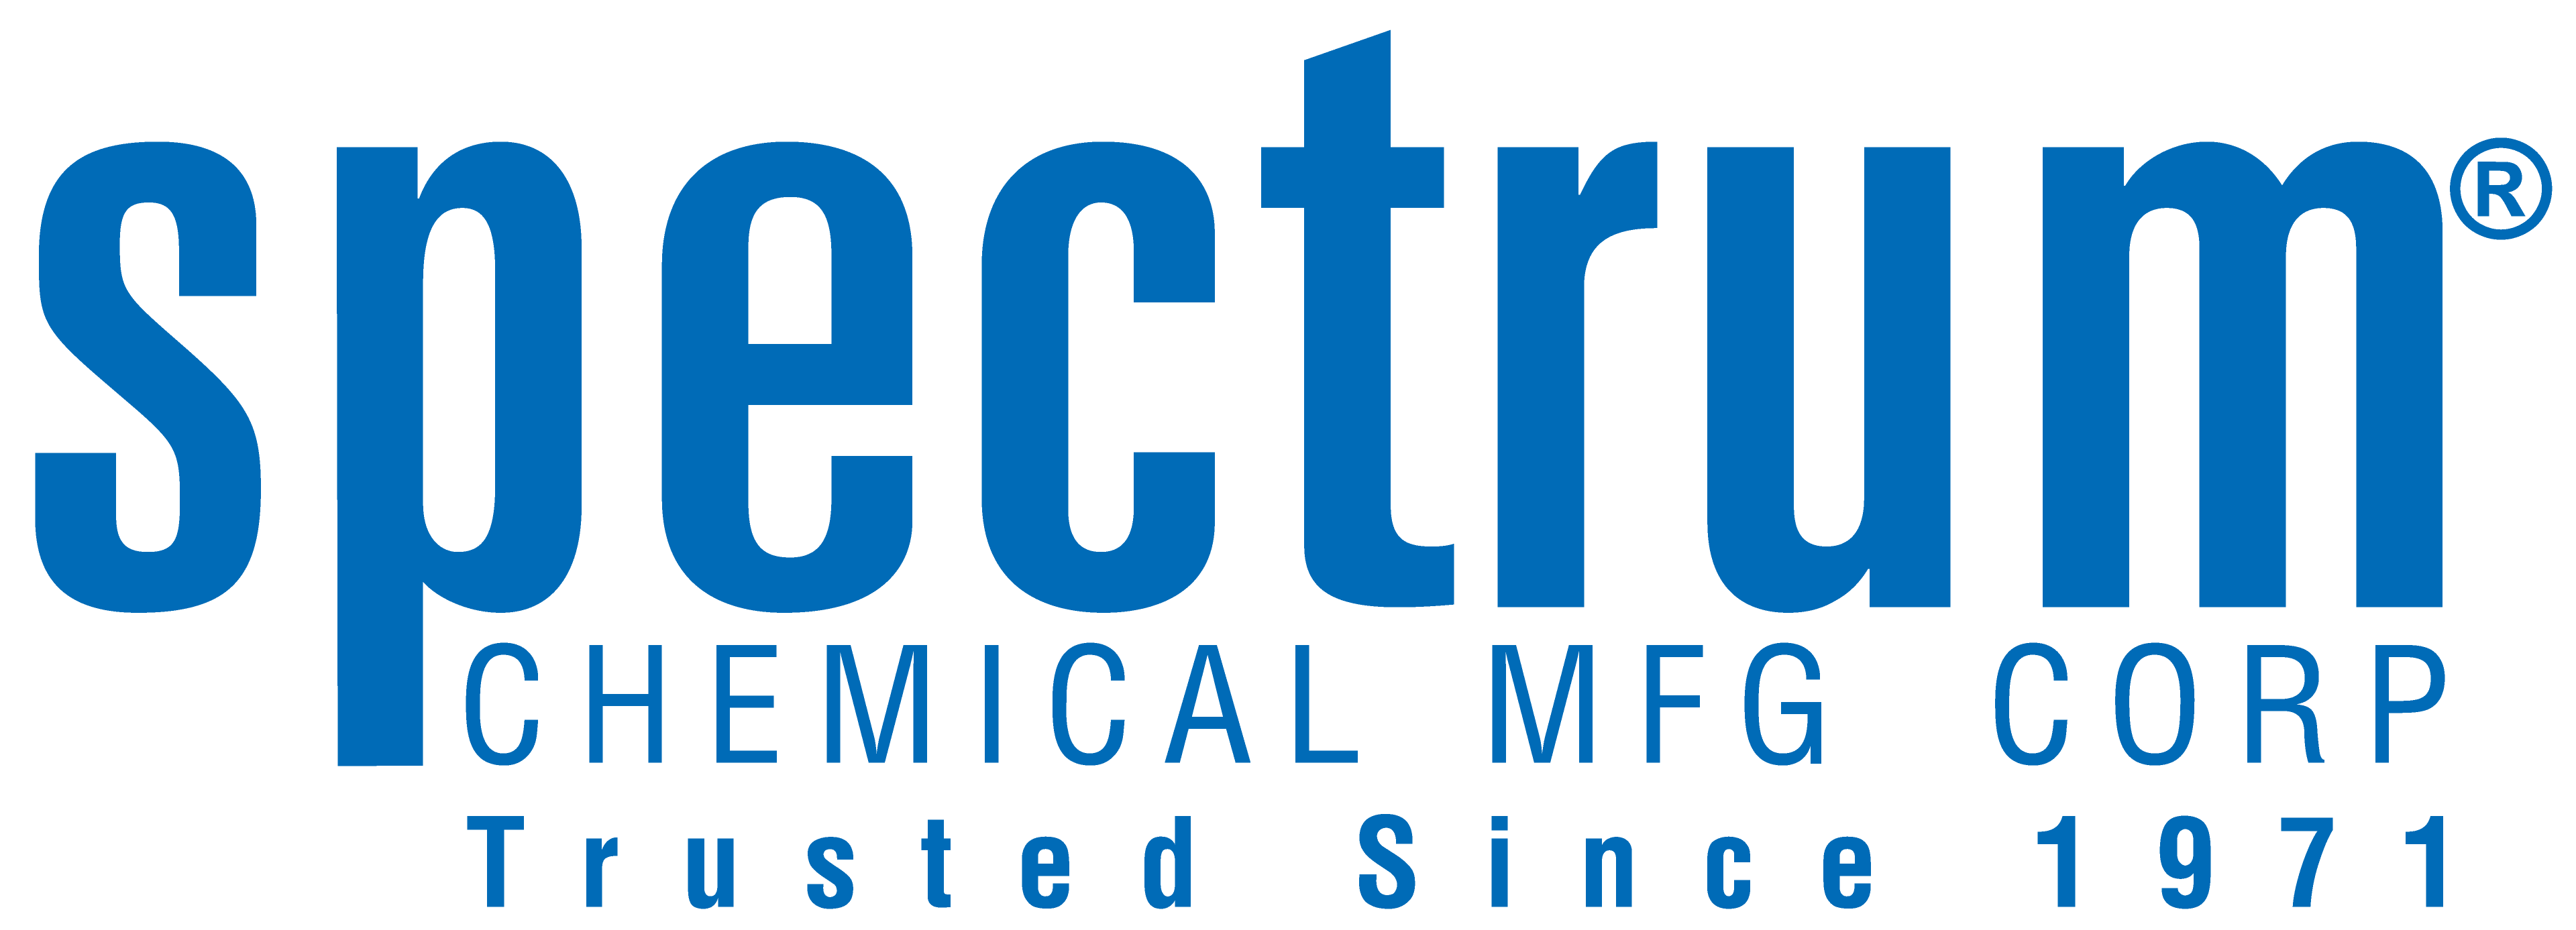 Spectrum Chemical